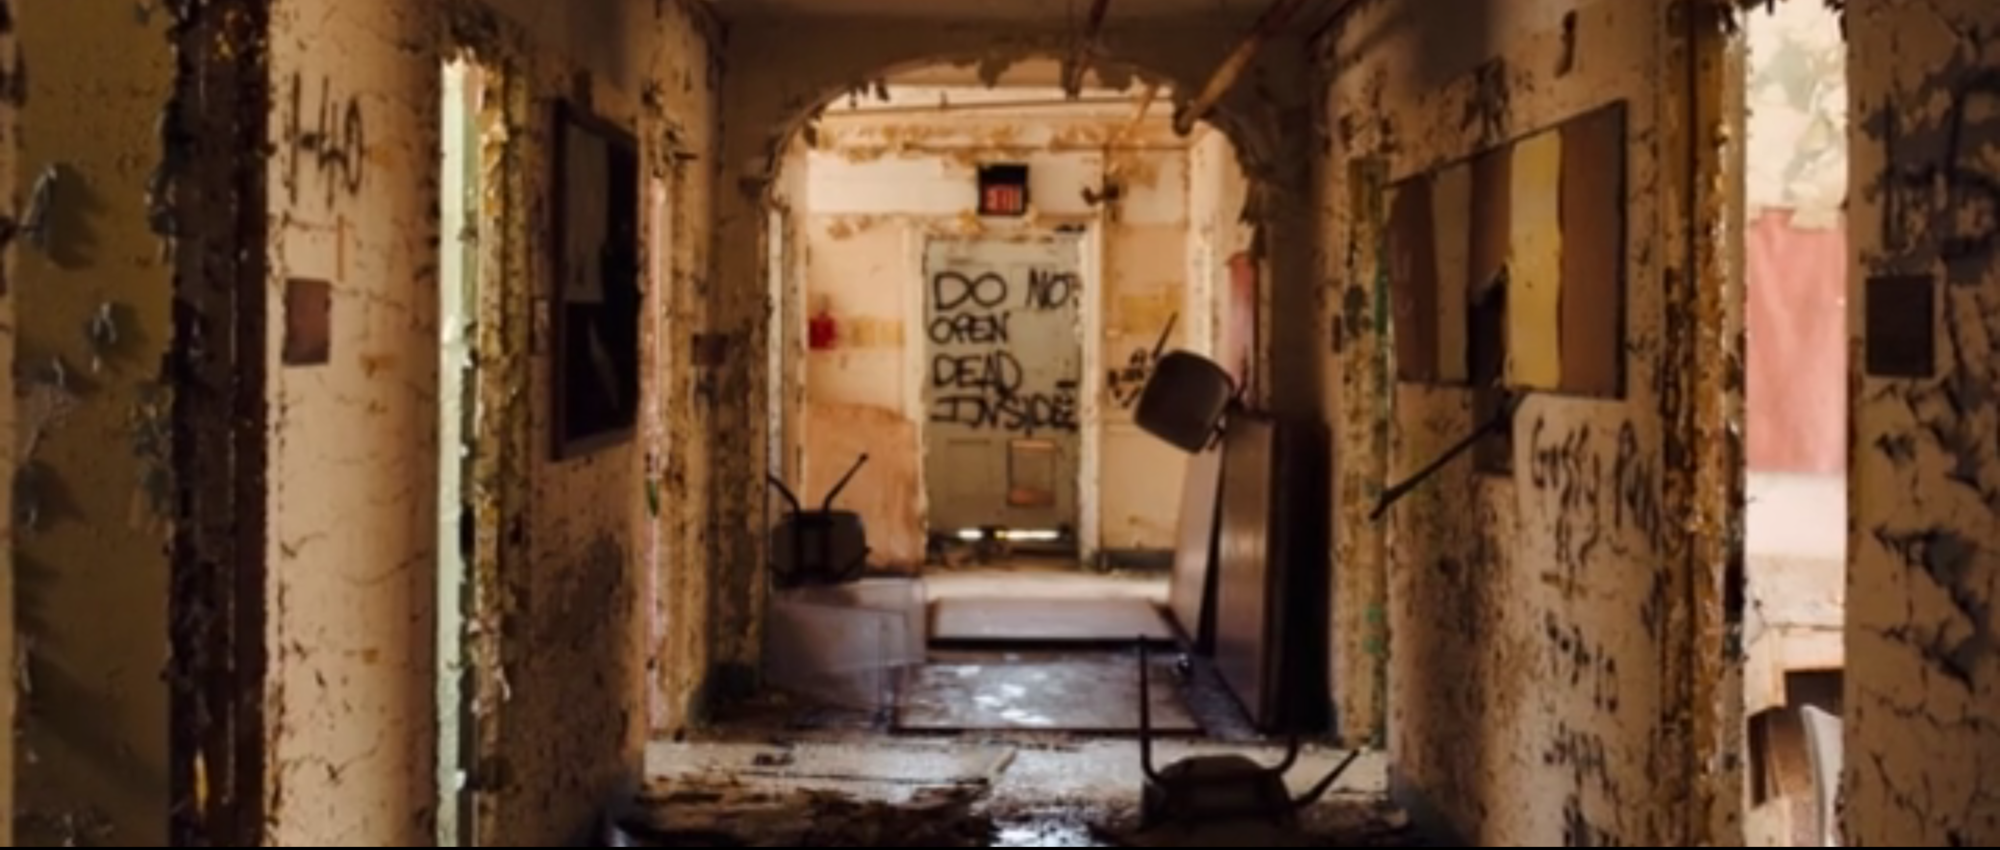 This Video of an Abandoned Insane Asylum Will Mess with Your Mind, Screenshot from video of asylum interior